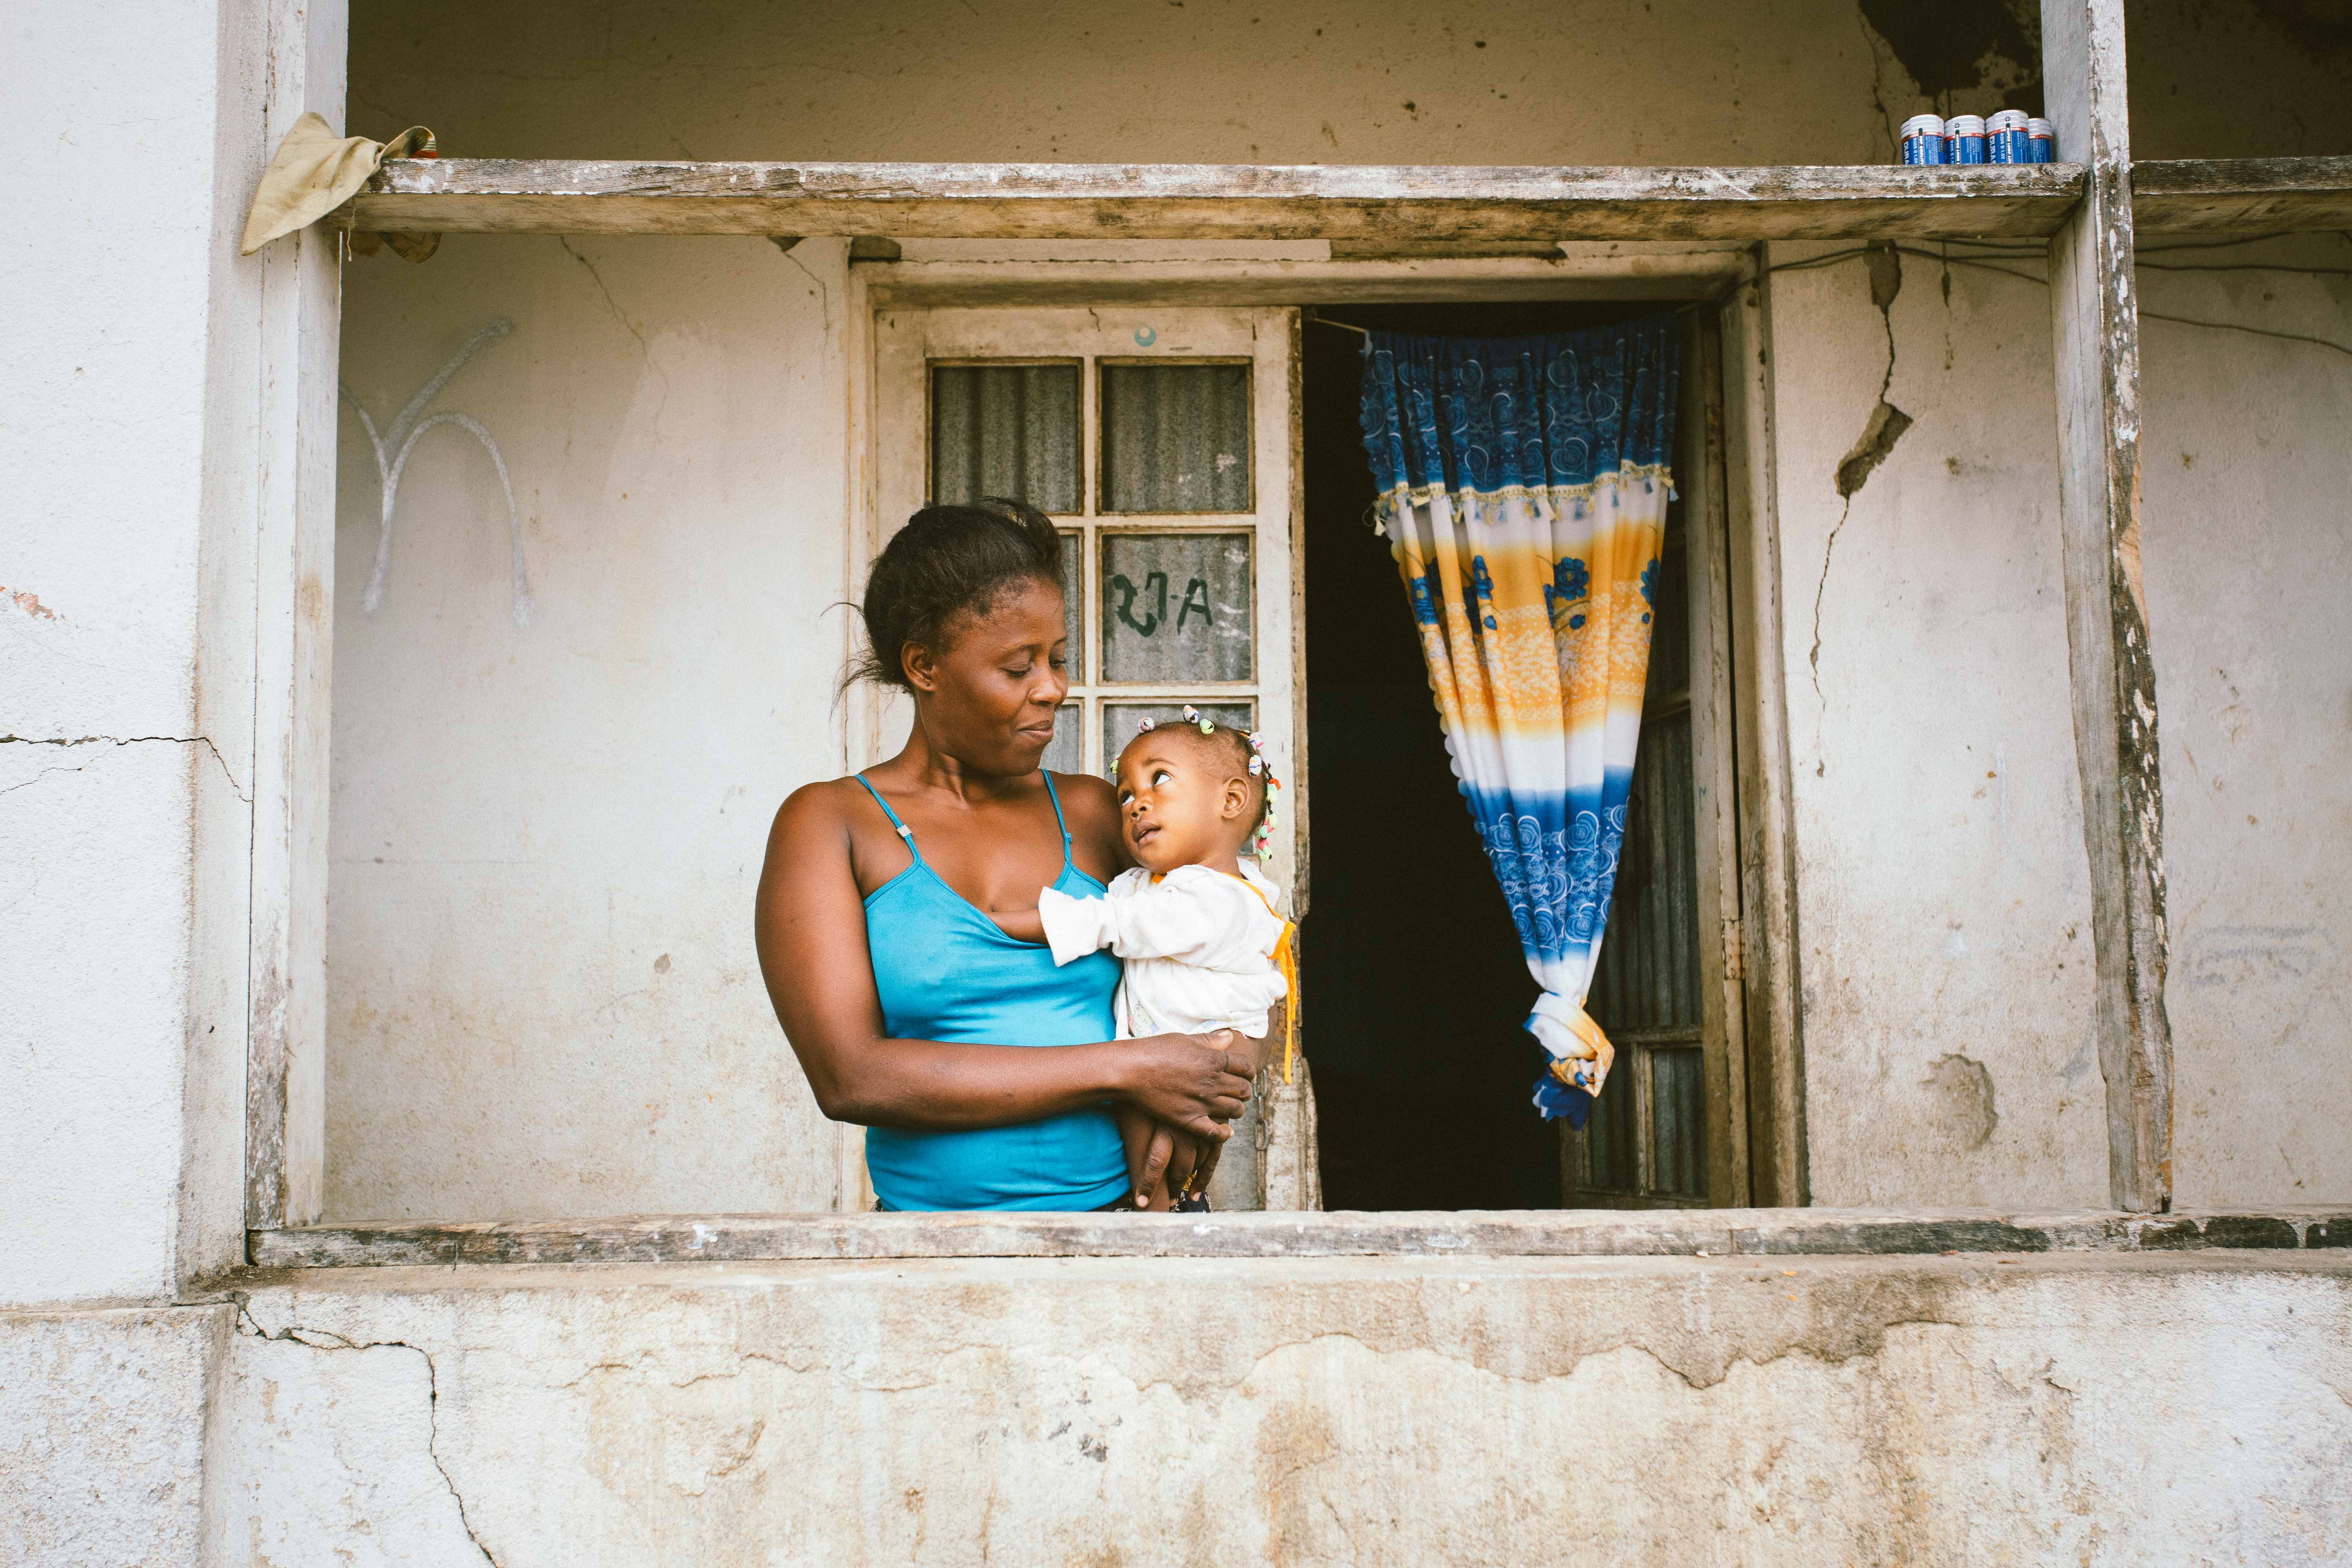 Woman standing on balcony holding a baby; they look at each other